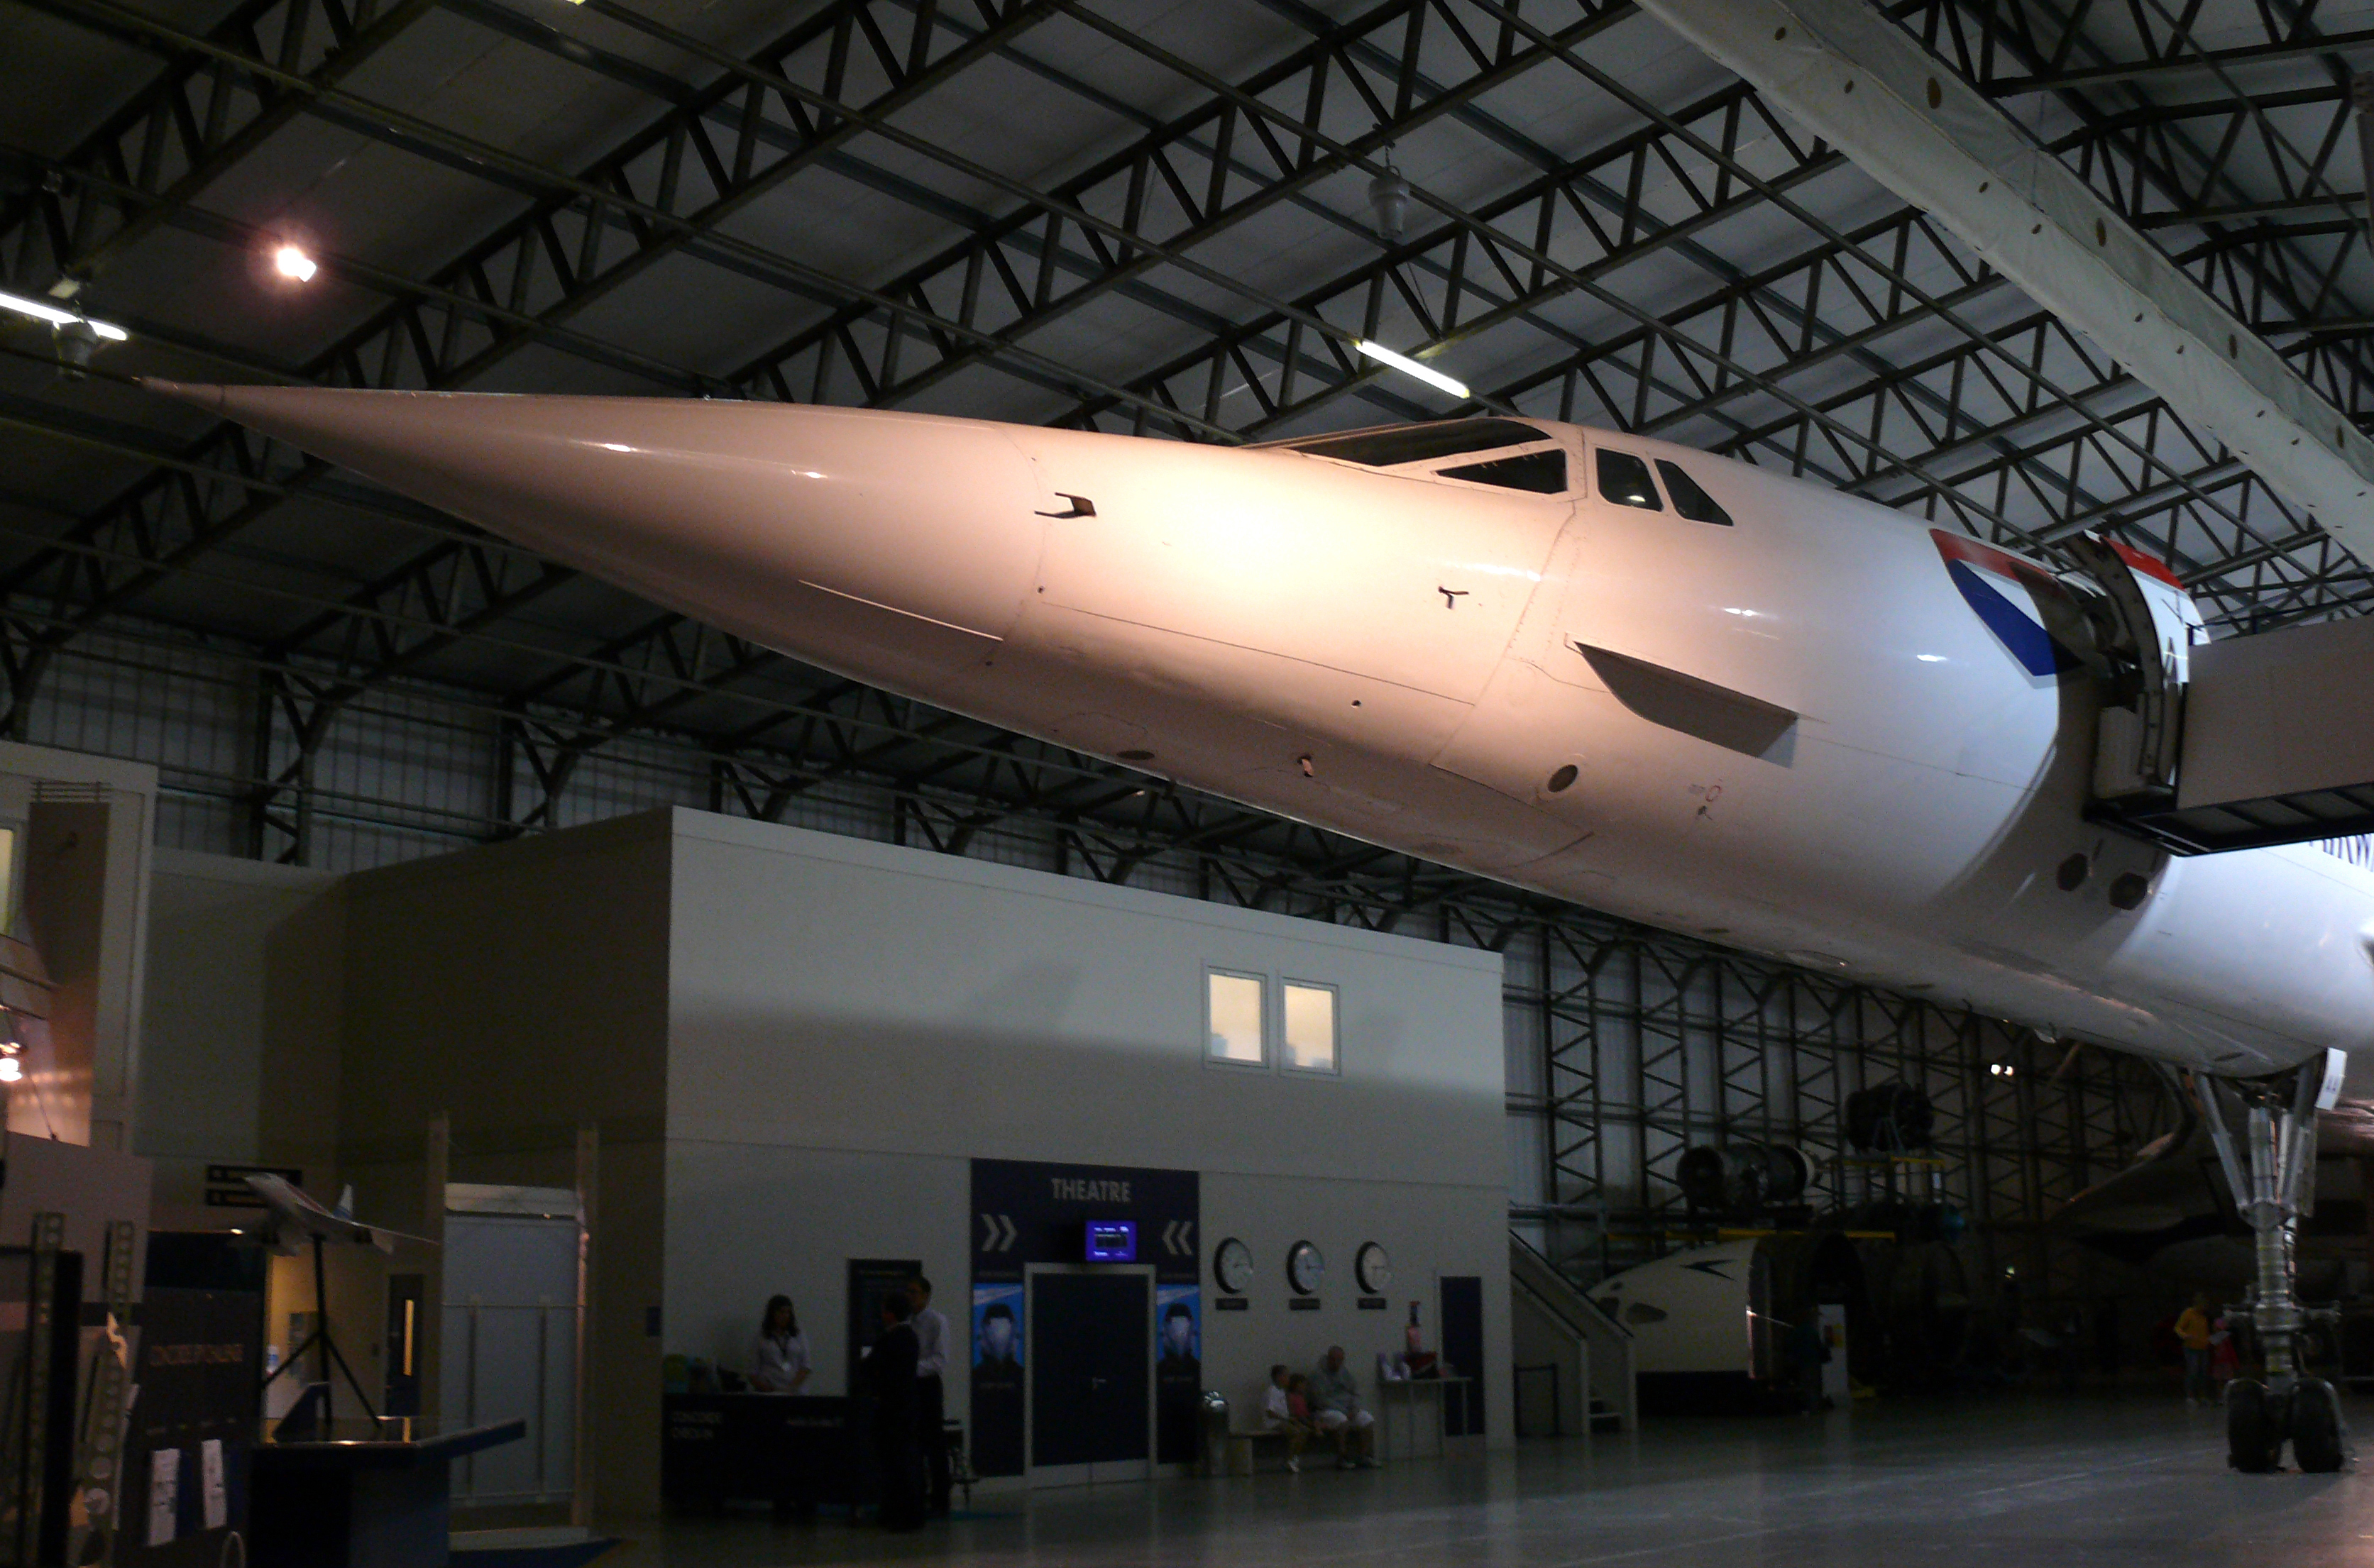 Museum_of_Flight_Concorde_14